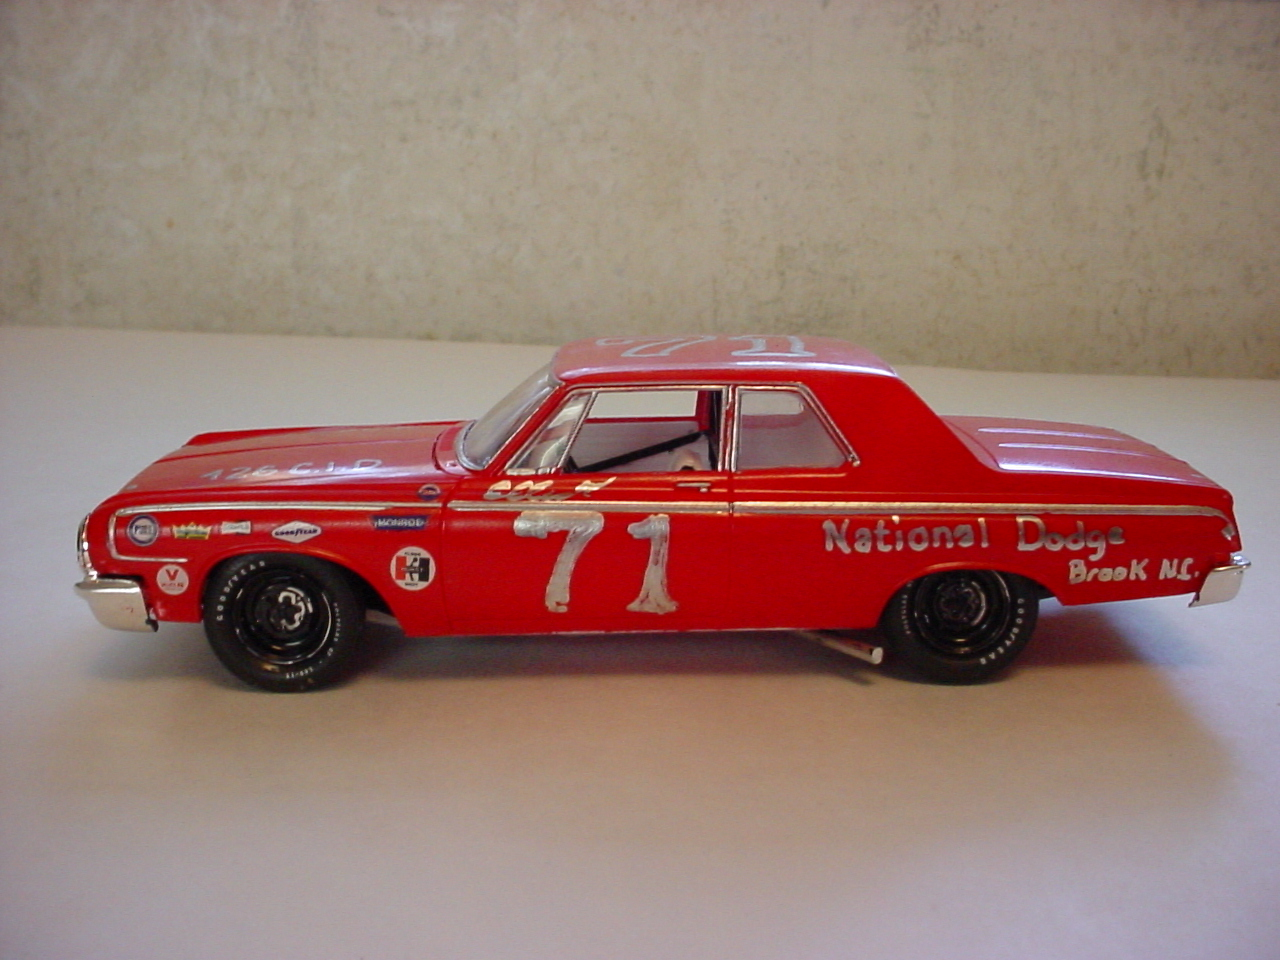 64 Dodge (fictional) stock car. - NASCAR - Model Cars ...